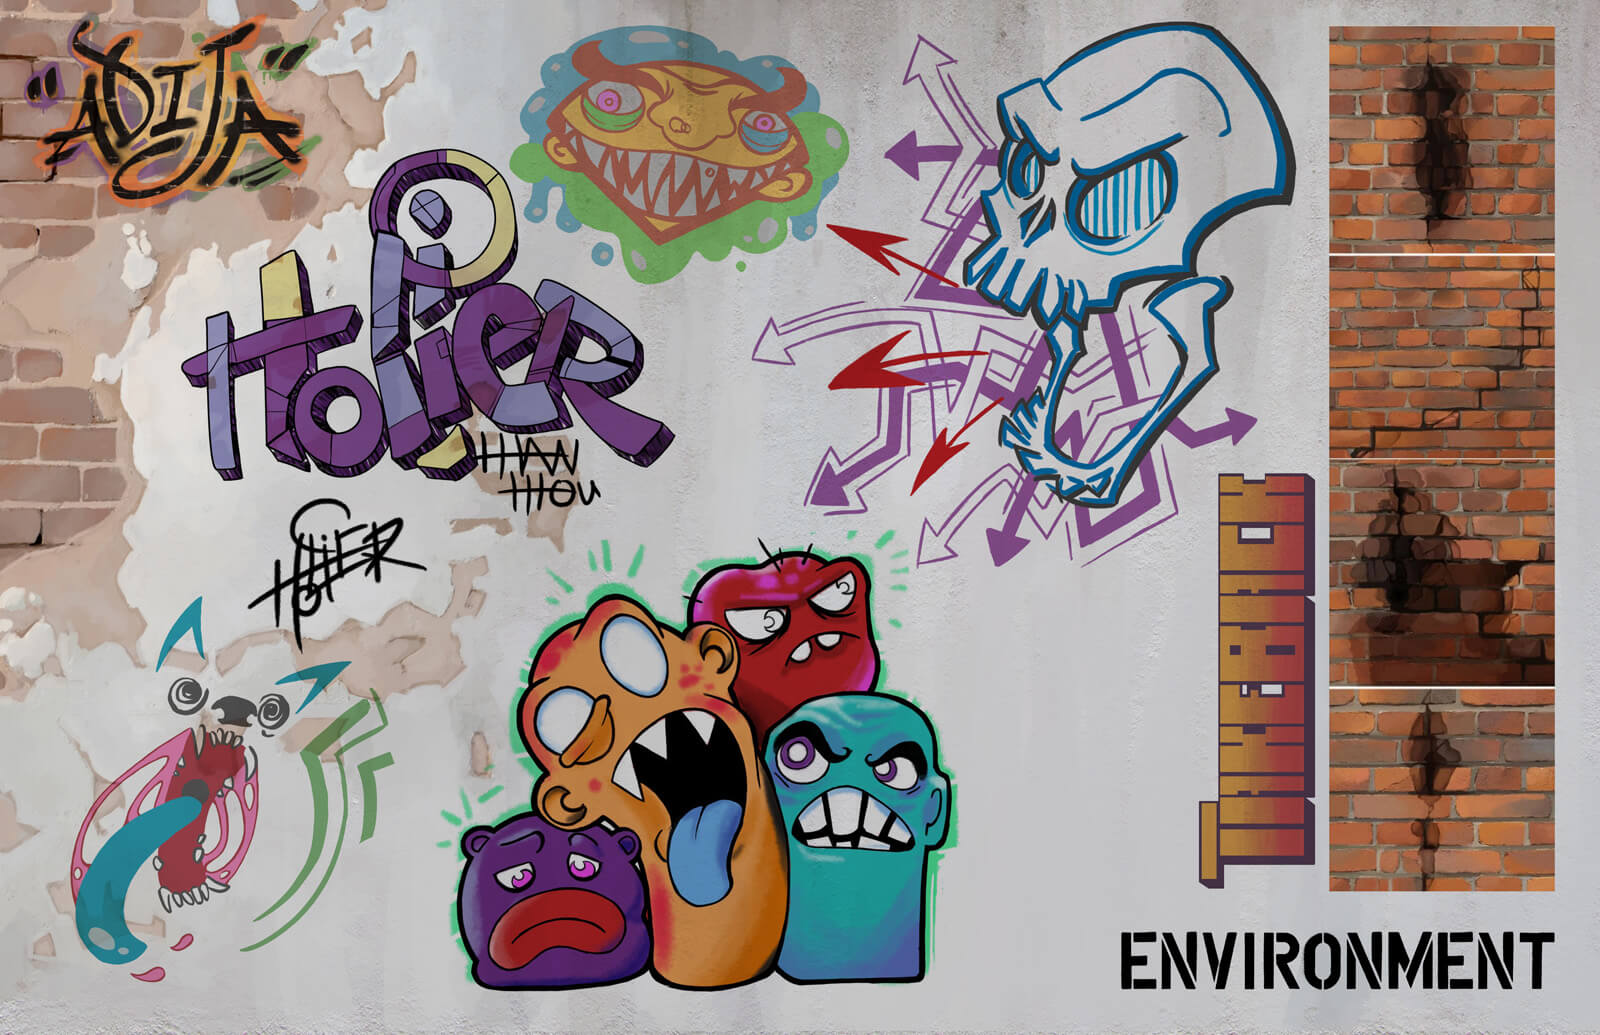 Environmental design sheet showing color drawings of the various graffiti and walls in the film Adija